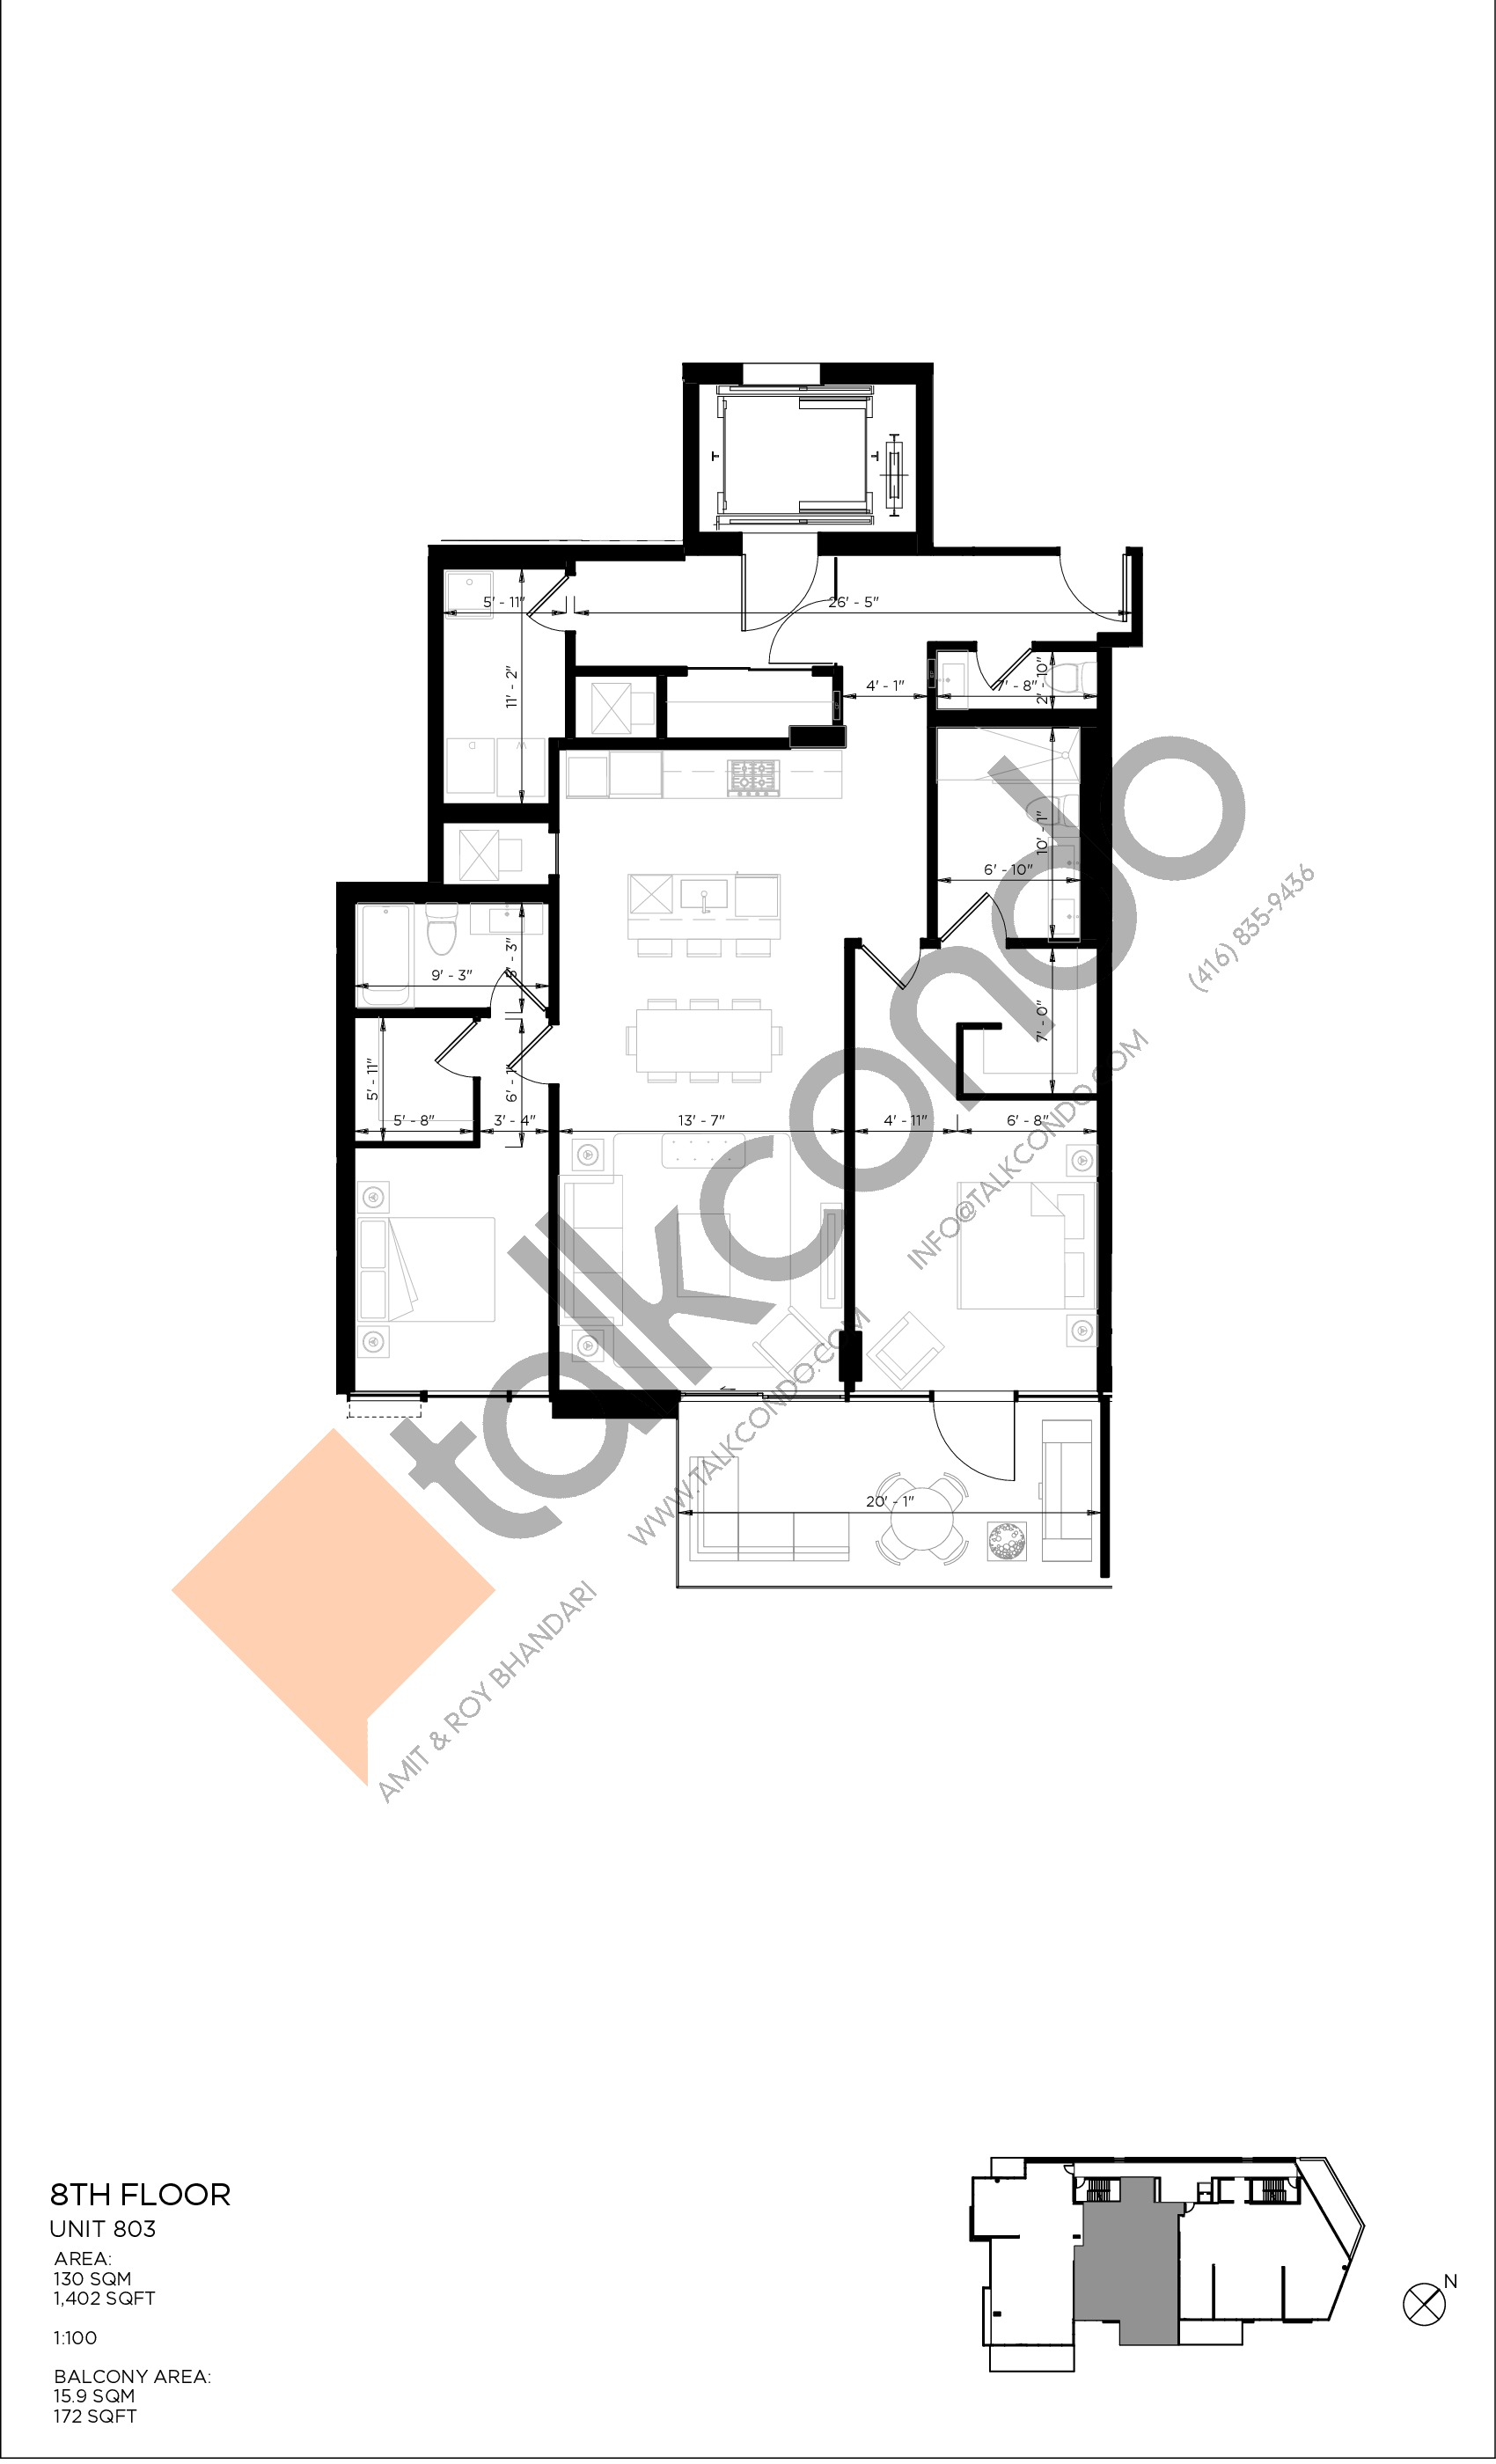 Unit 803 Floor Plan at 346 Davenport Condos - 1402 sq.ft